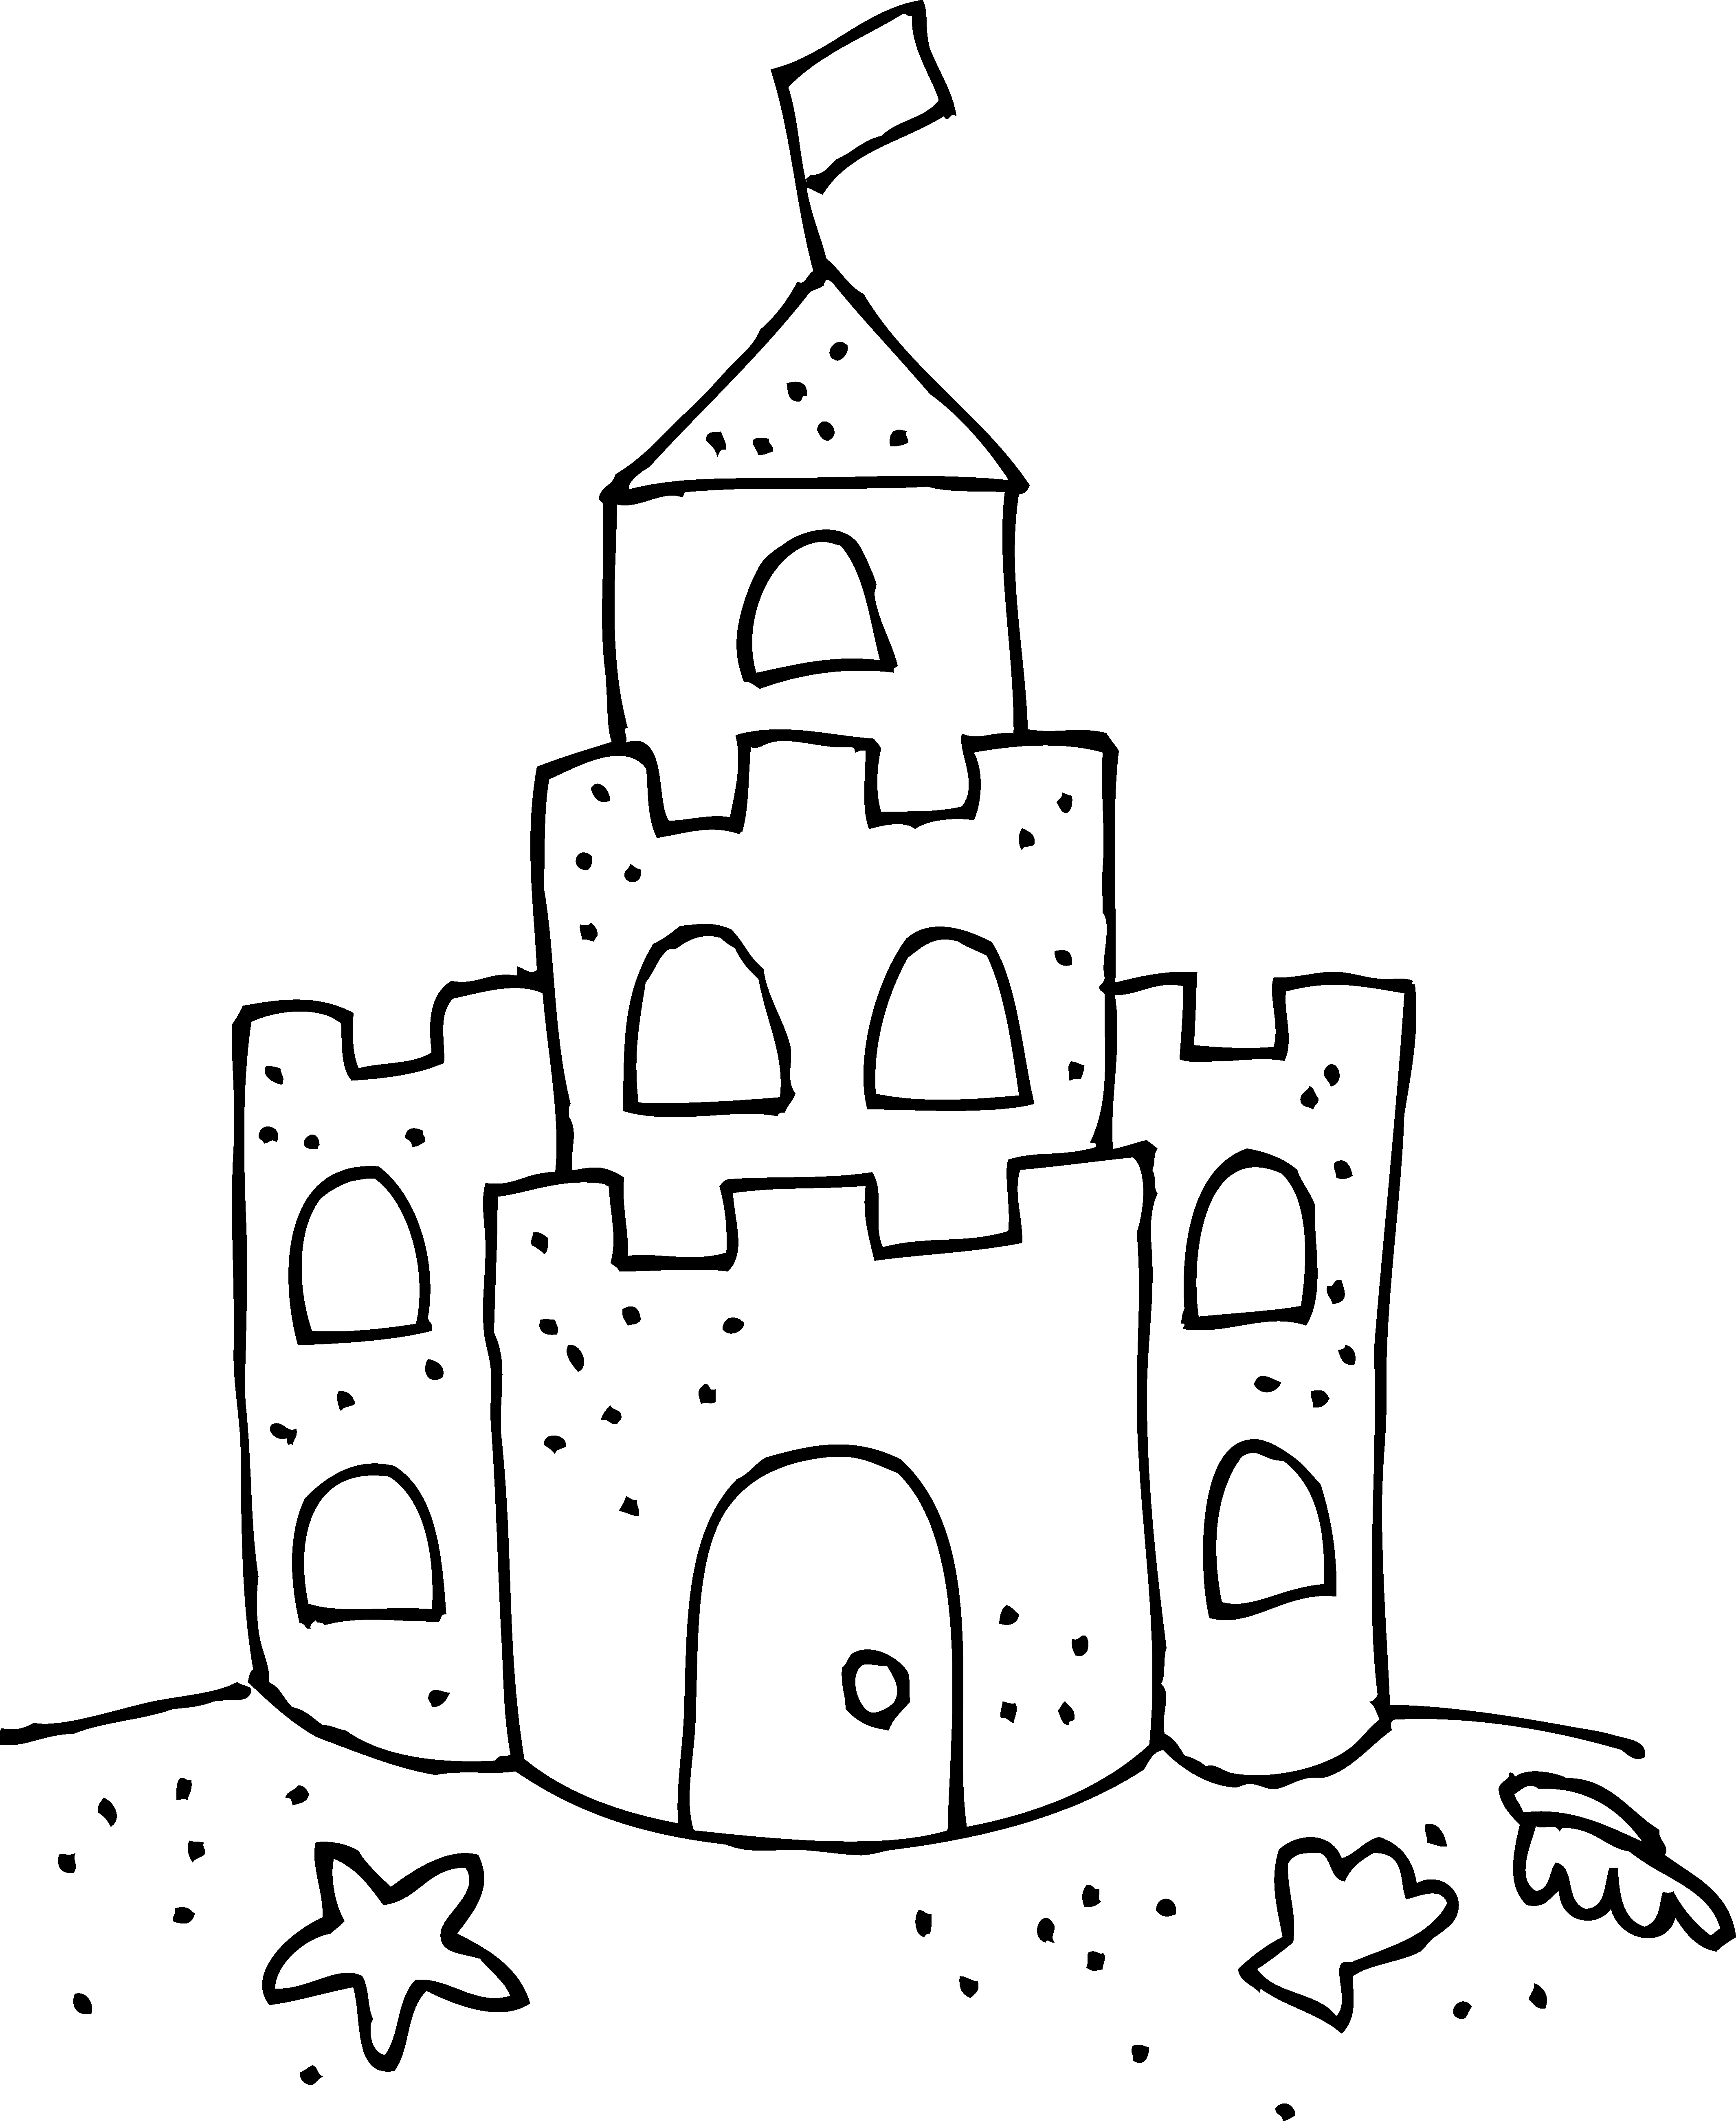 Sand Castle Clip Art Black And White Cute Sand Castle Coloring Page